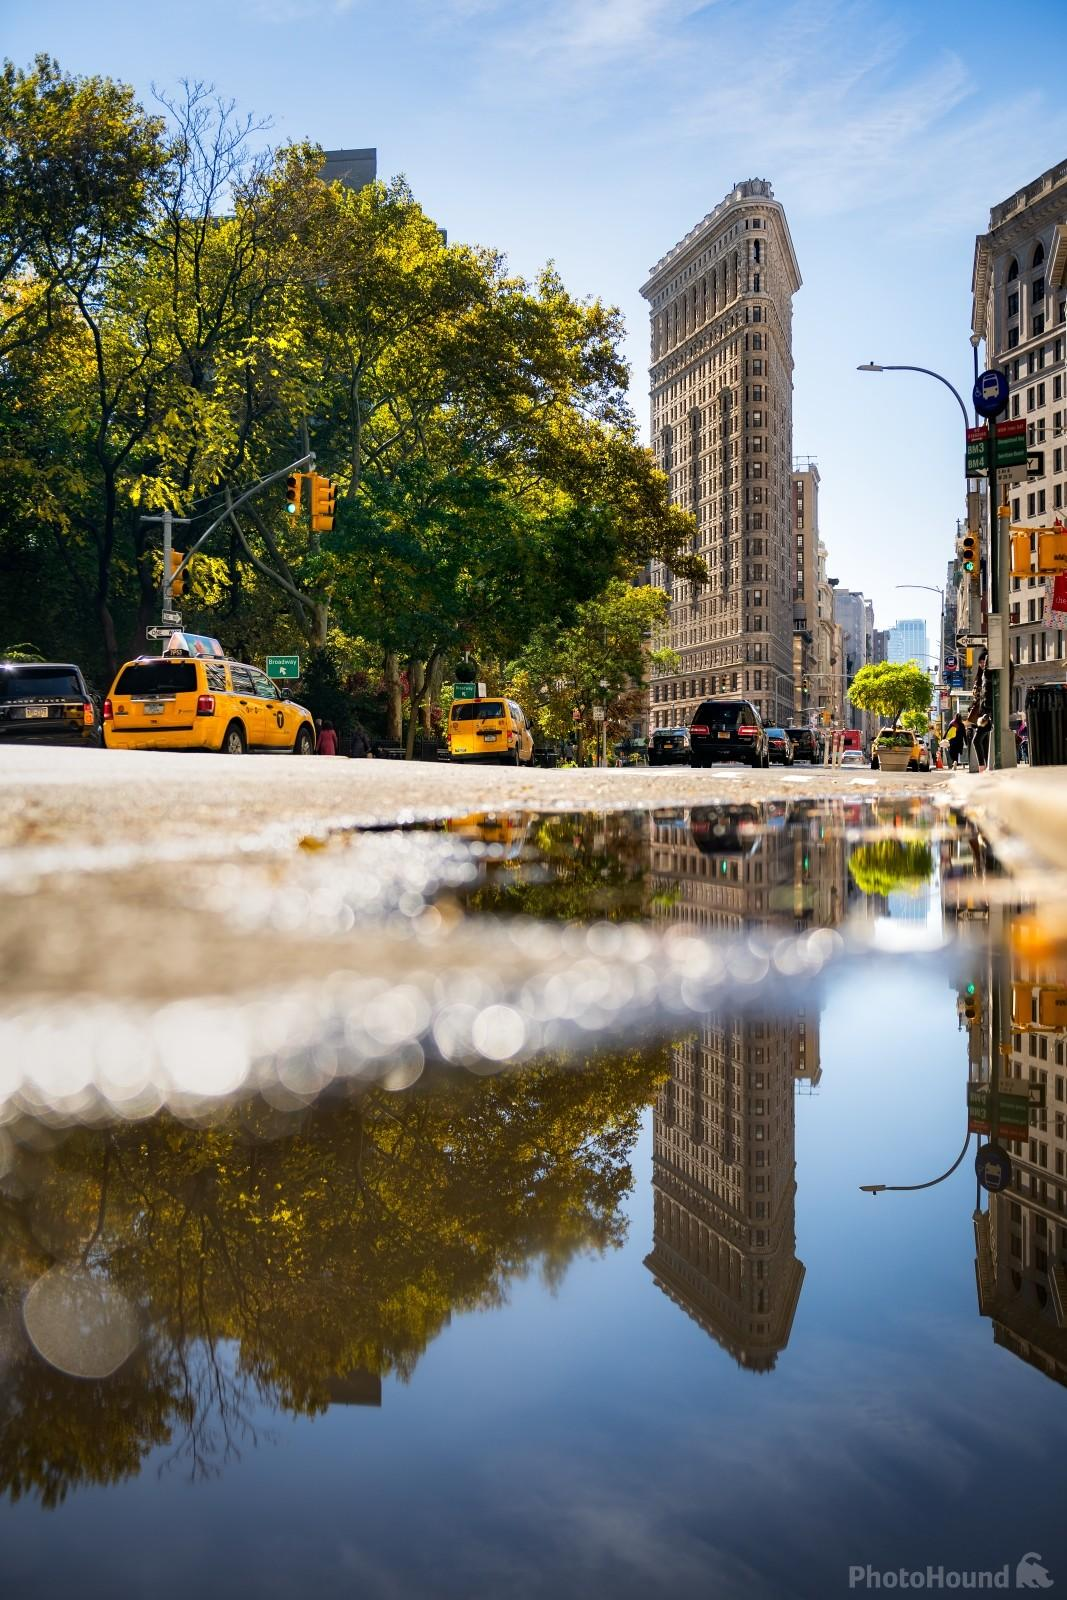 Flatiron Building reflecting in the water puddle